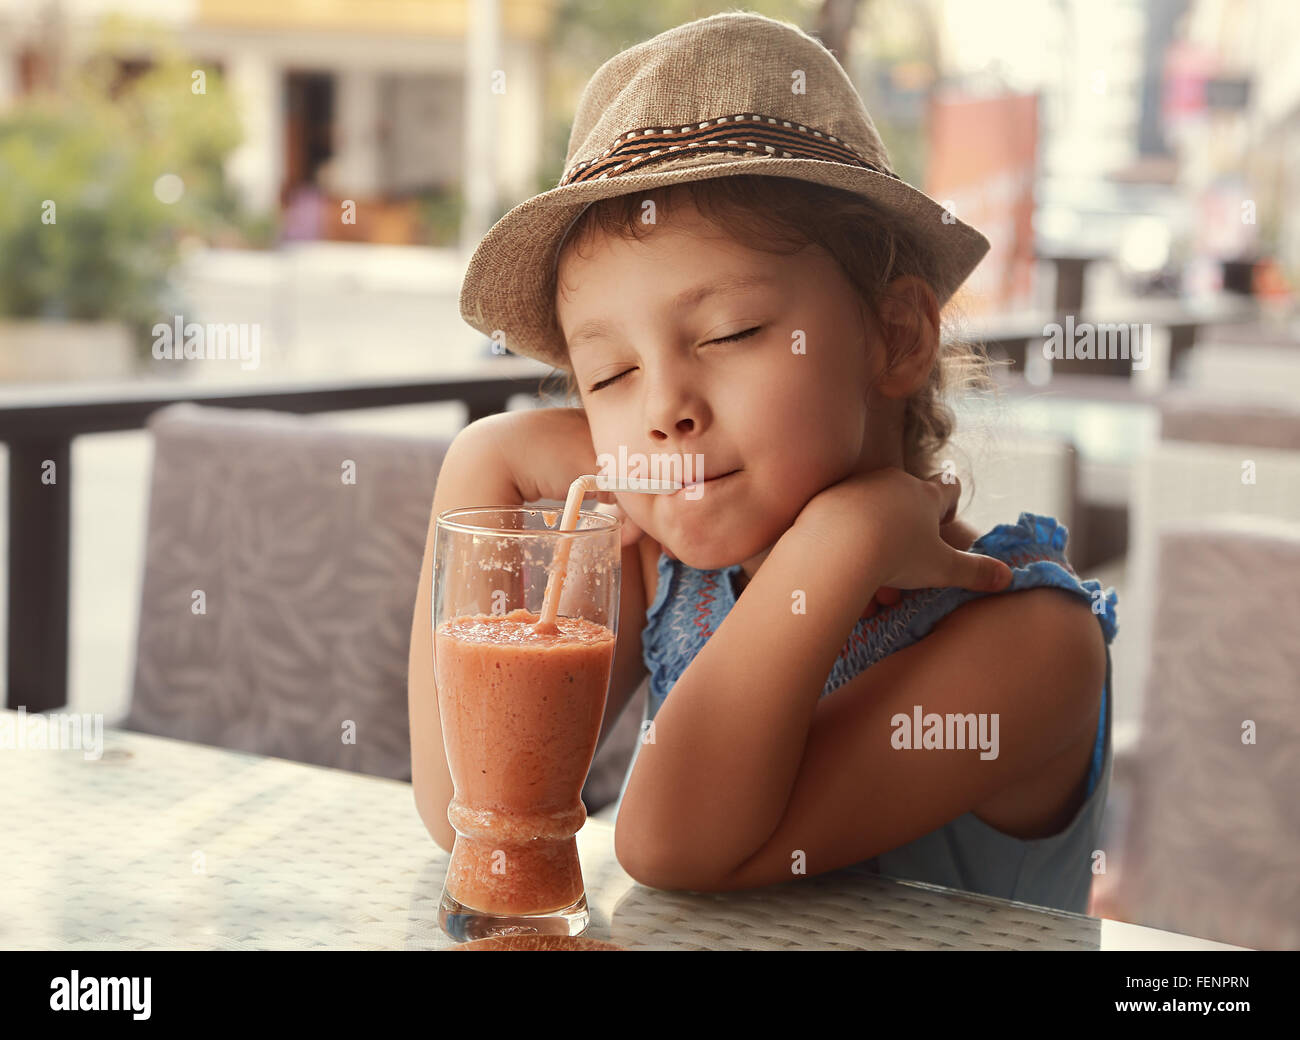 Happy enjoying kid girl drinking tasty natural smoothie juice with closed relaxed eyes in street restaurant - Stock Image